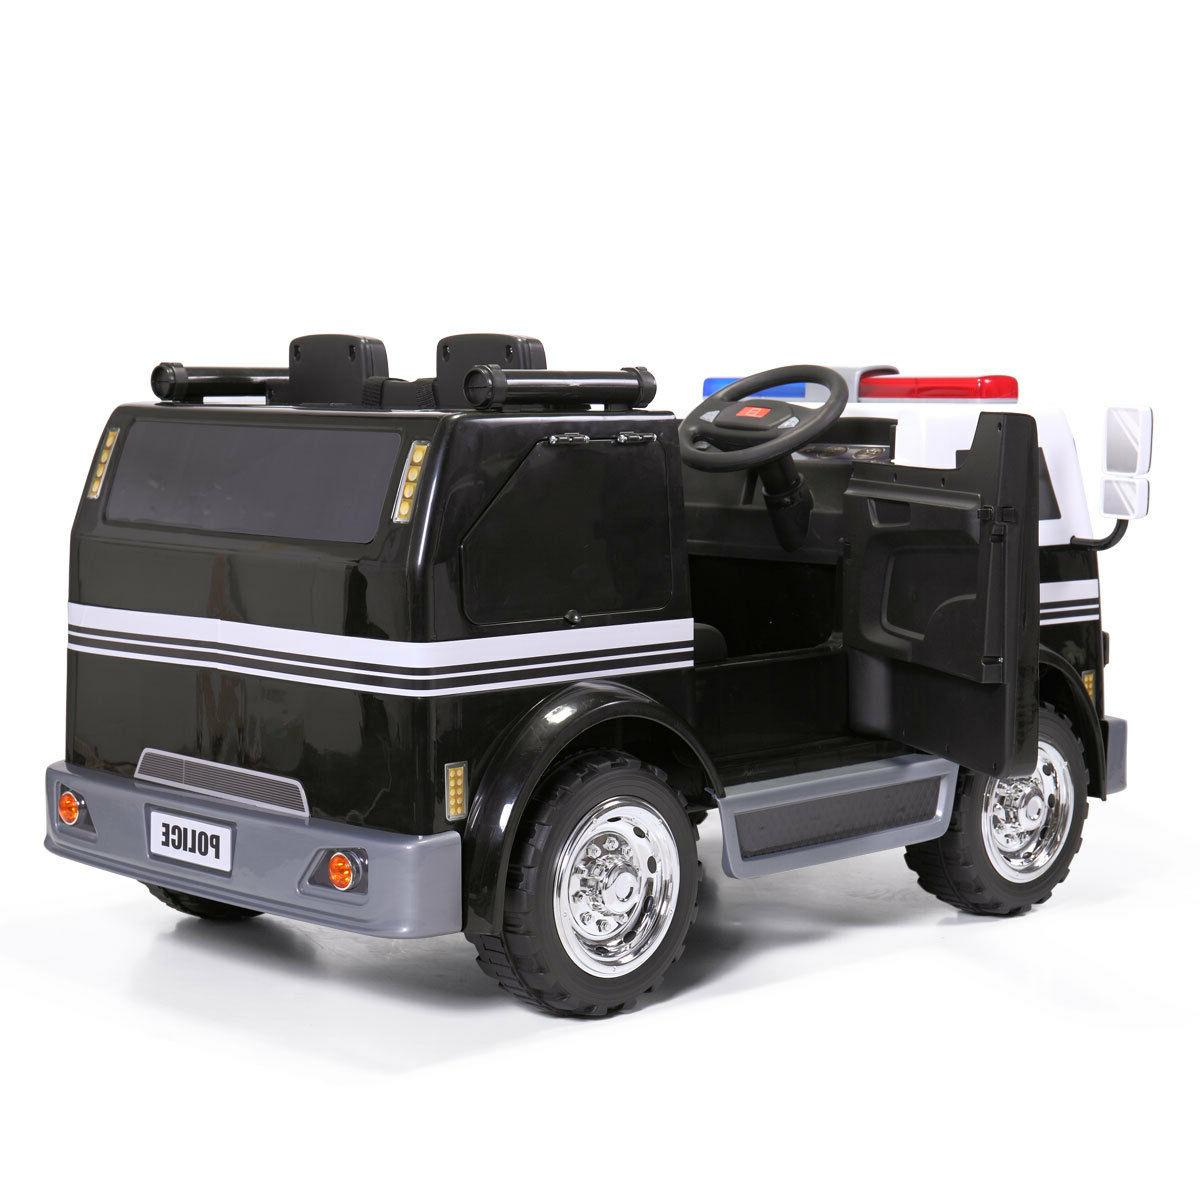 Ride On Police Electric Battery Toy Vehicle